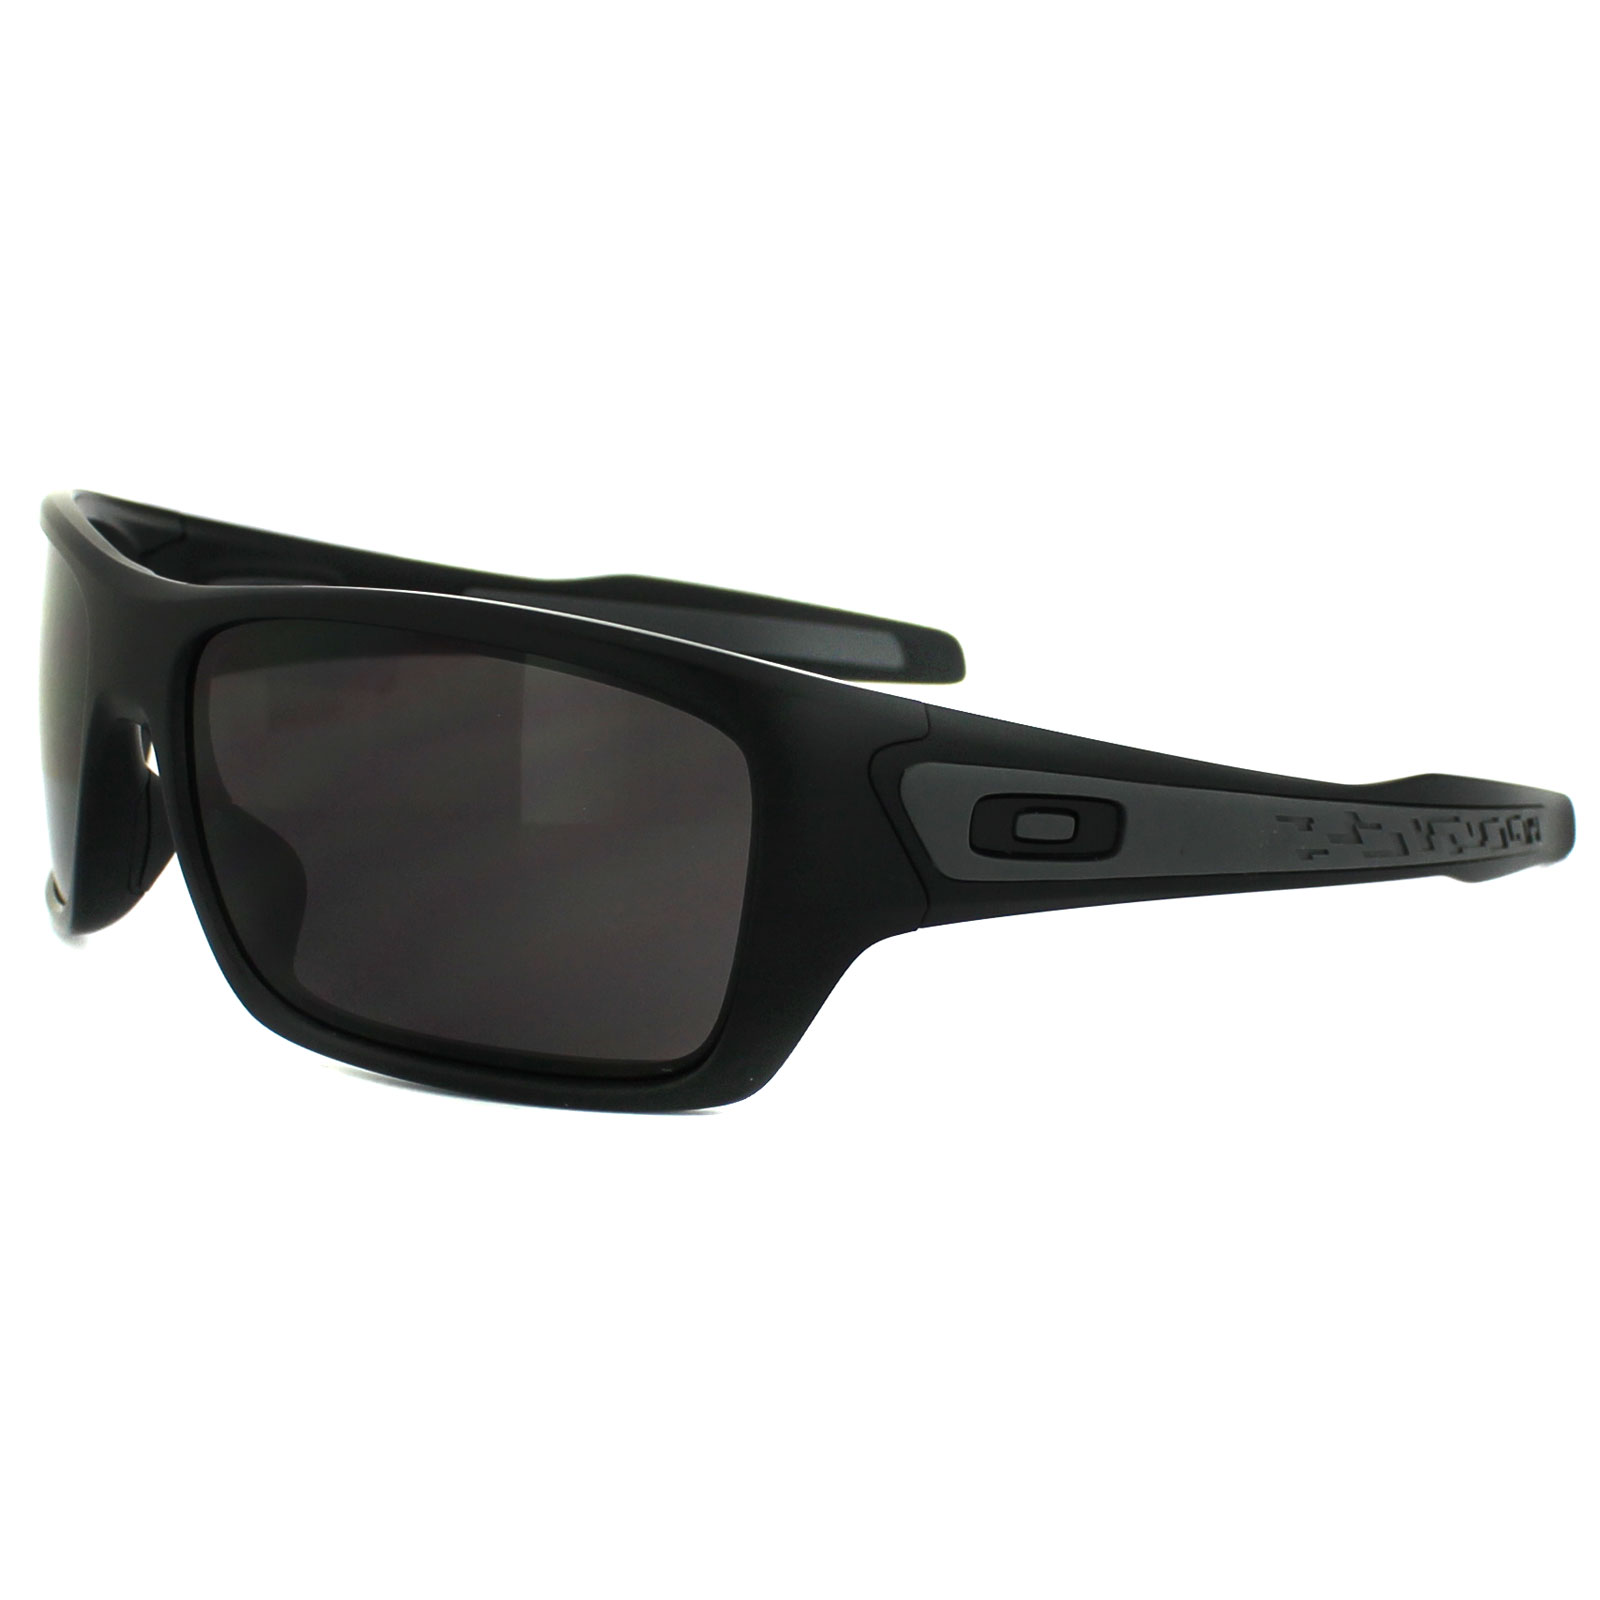 cheap discount oakley sunglasses  Cheap Oakley Turbine Sunglasses - Discounted Sunglasses